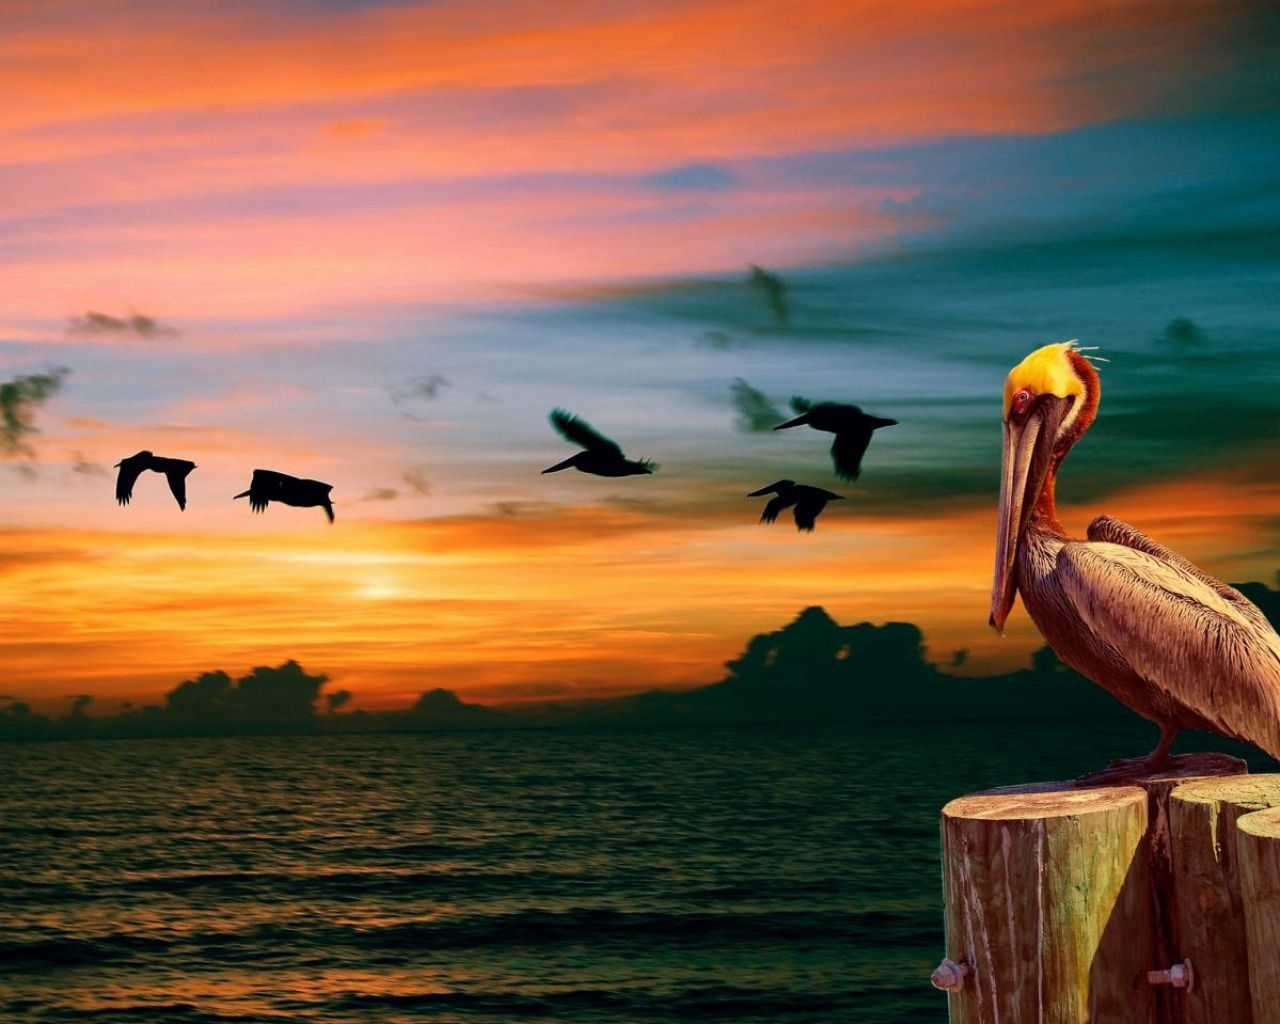 88307 download wallpaper Animals, Nature, Pelican, Sunset, Birds screensavers and pictures for free